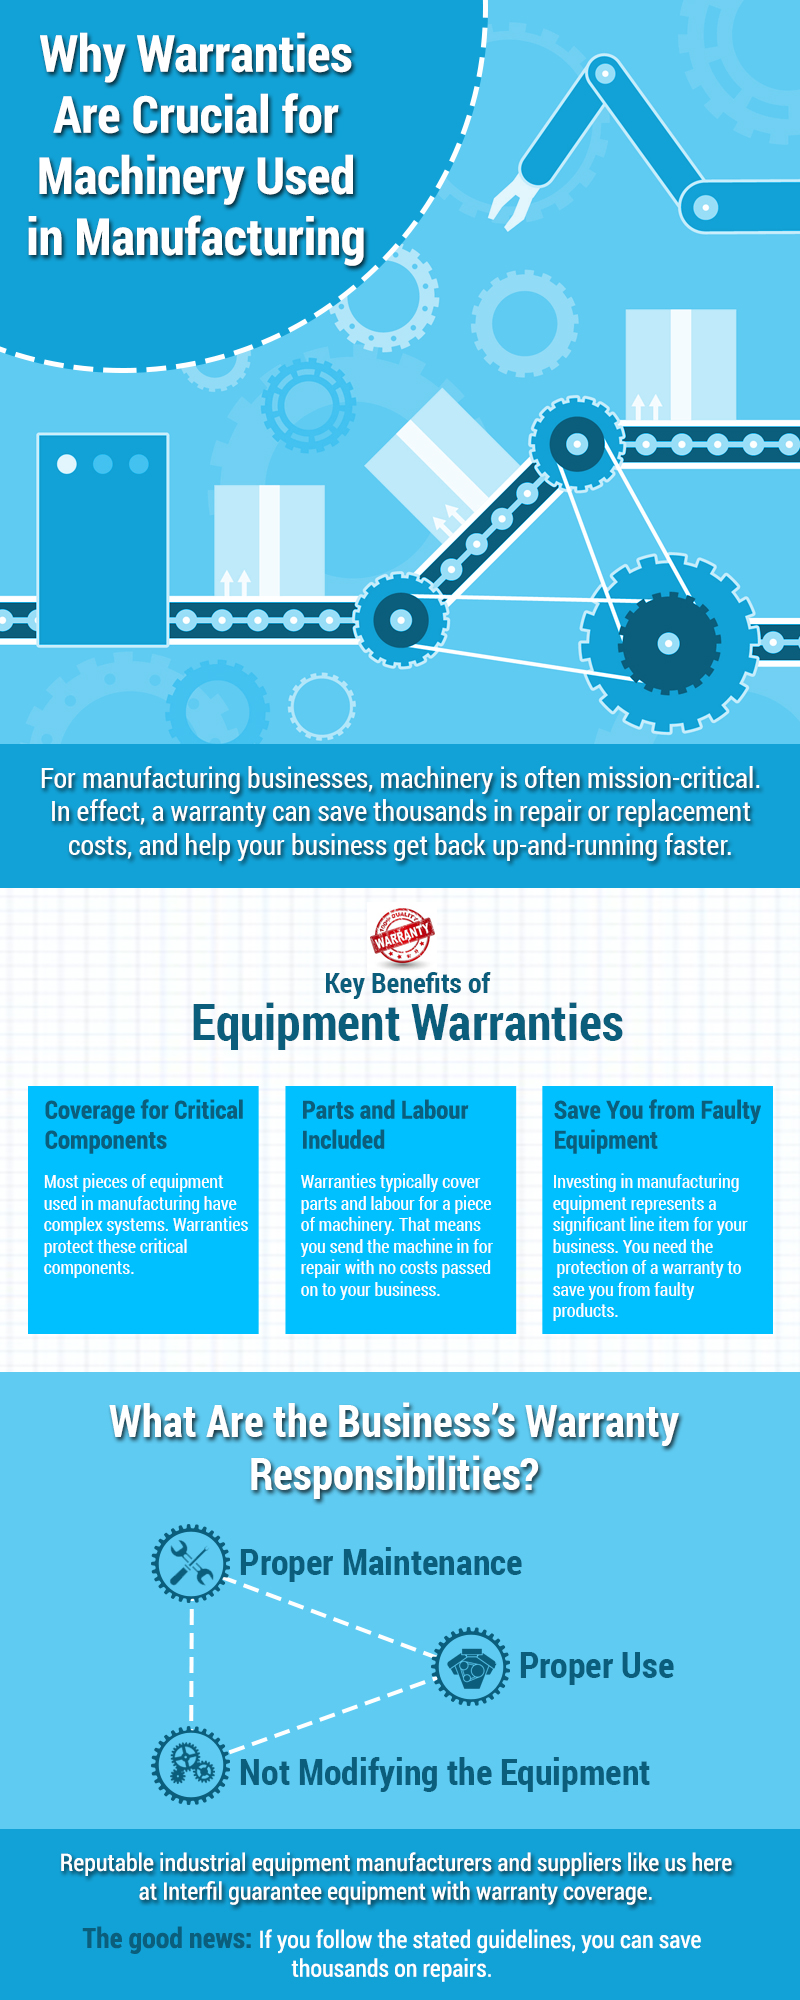 Why Warranties are Crucial for Machinery Used in Manufacturing